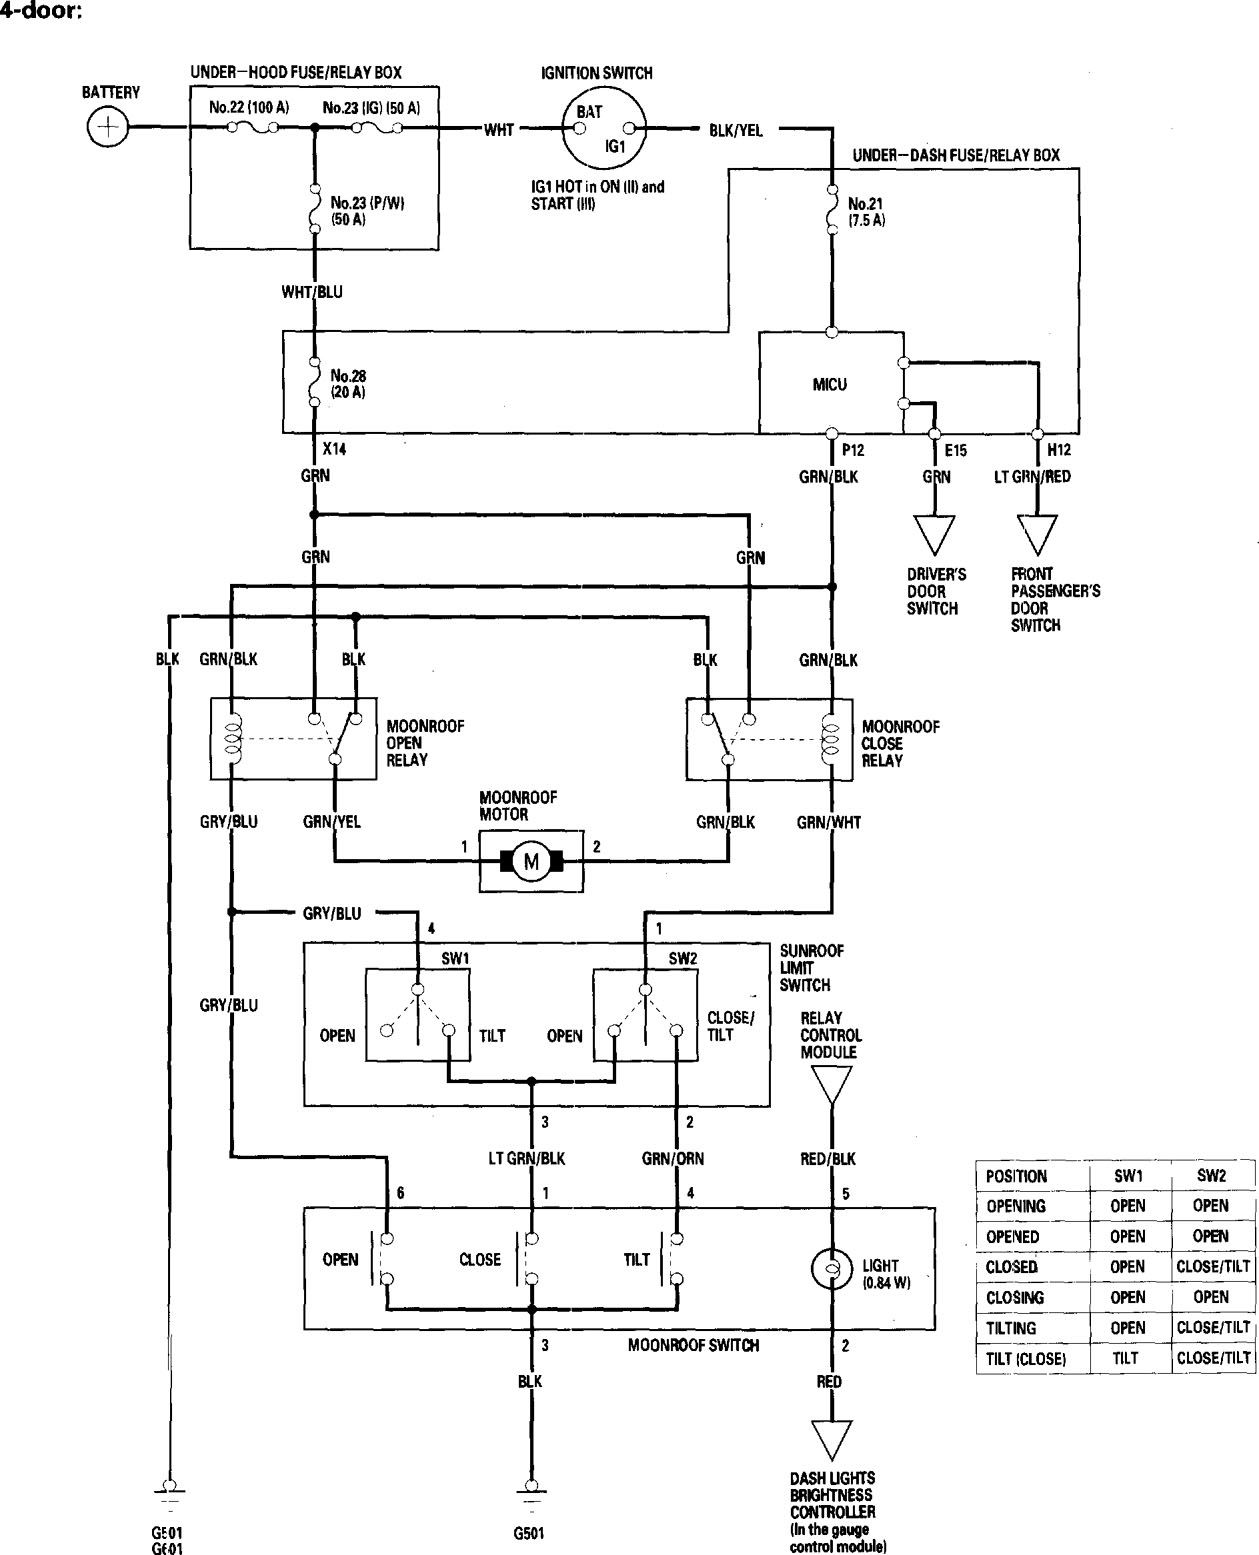 Honda Accord  2006  - Wiring Diagrams